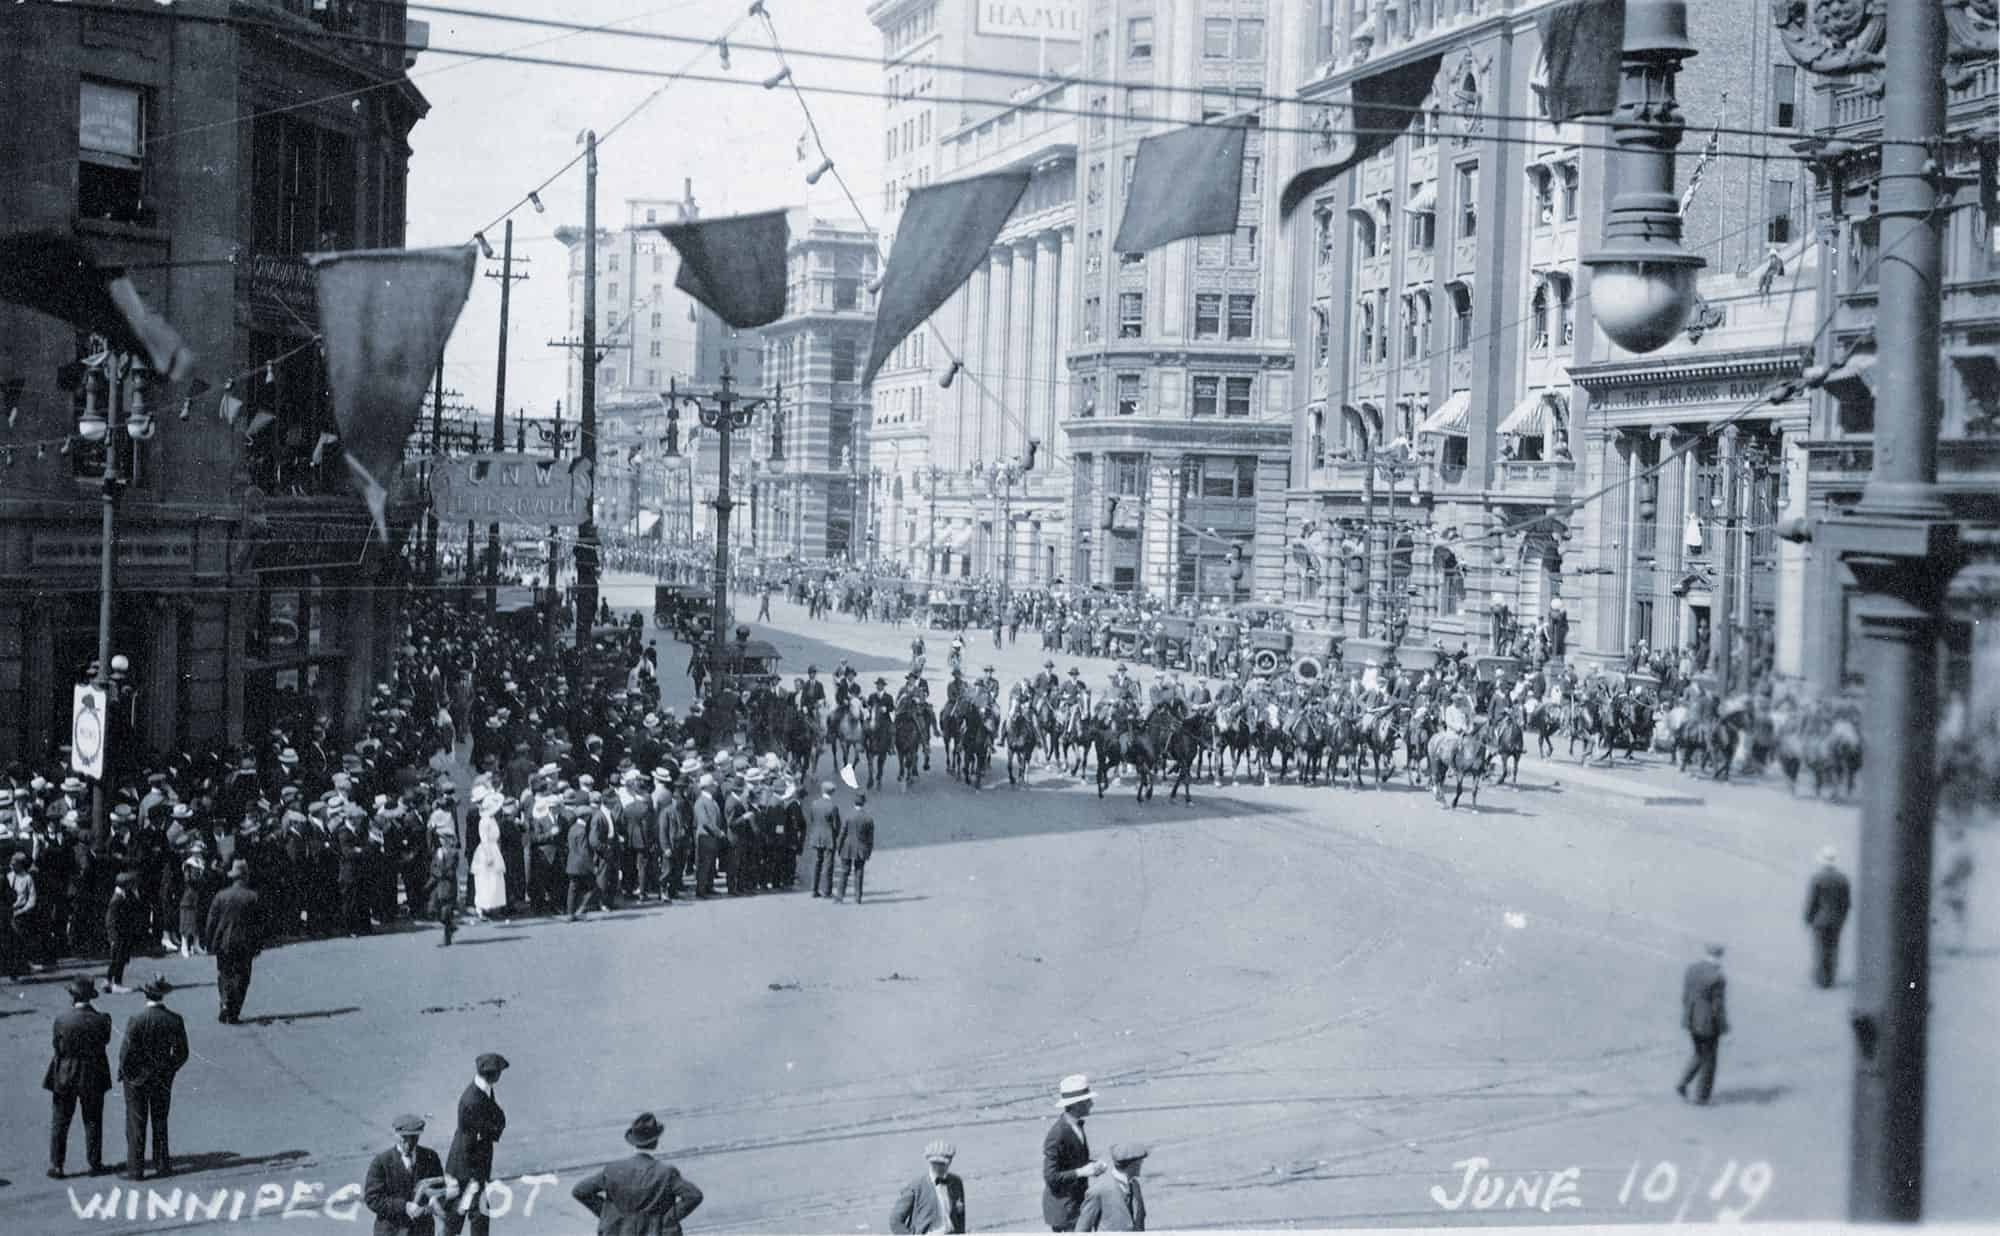 Winnipeg General Strike, June 10, 1919.